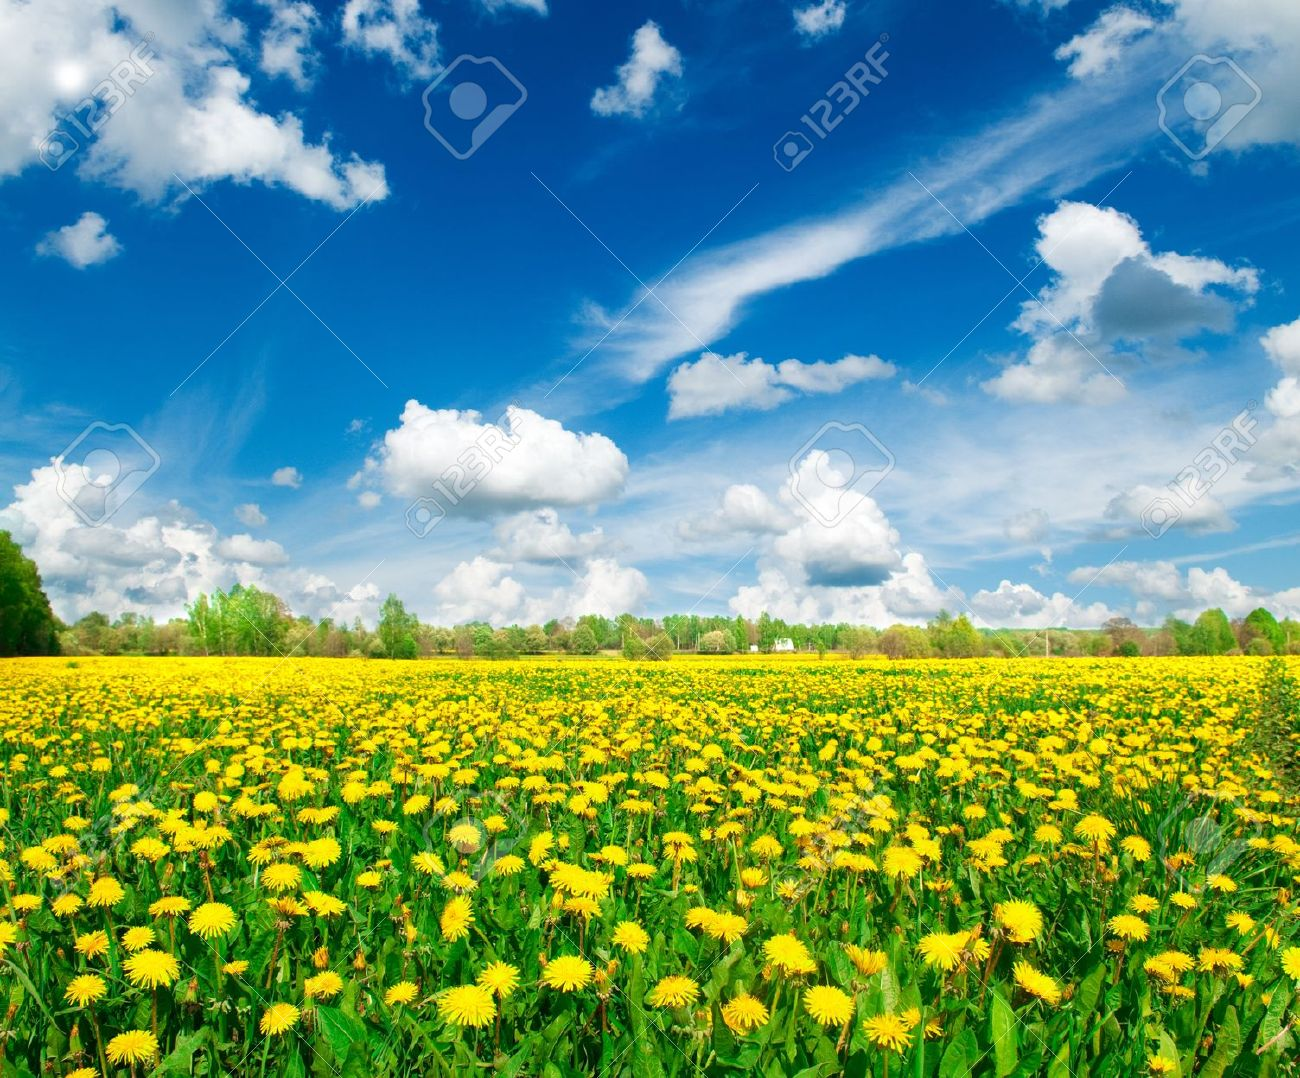 Meadow with yellow dandelions. - 7709787